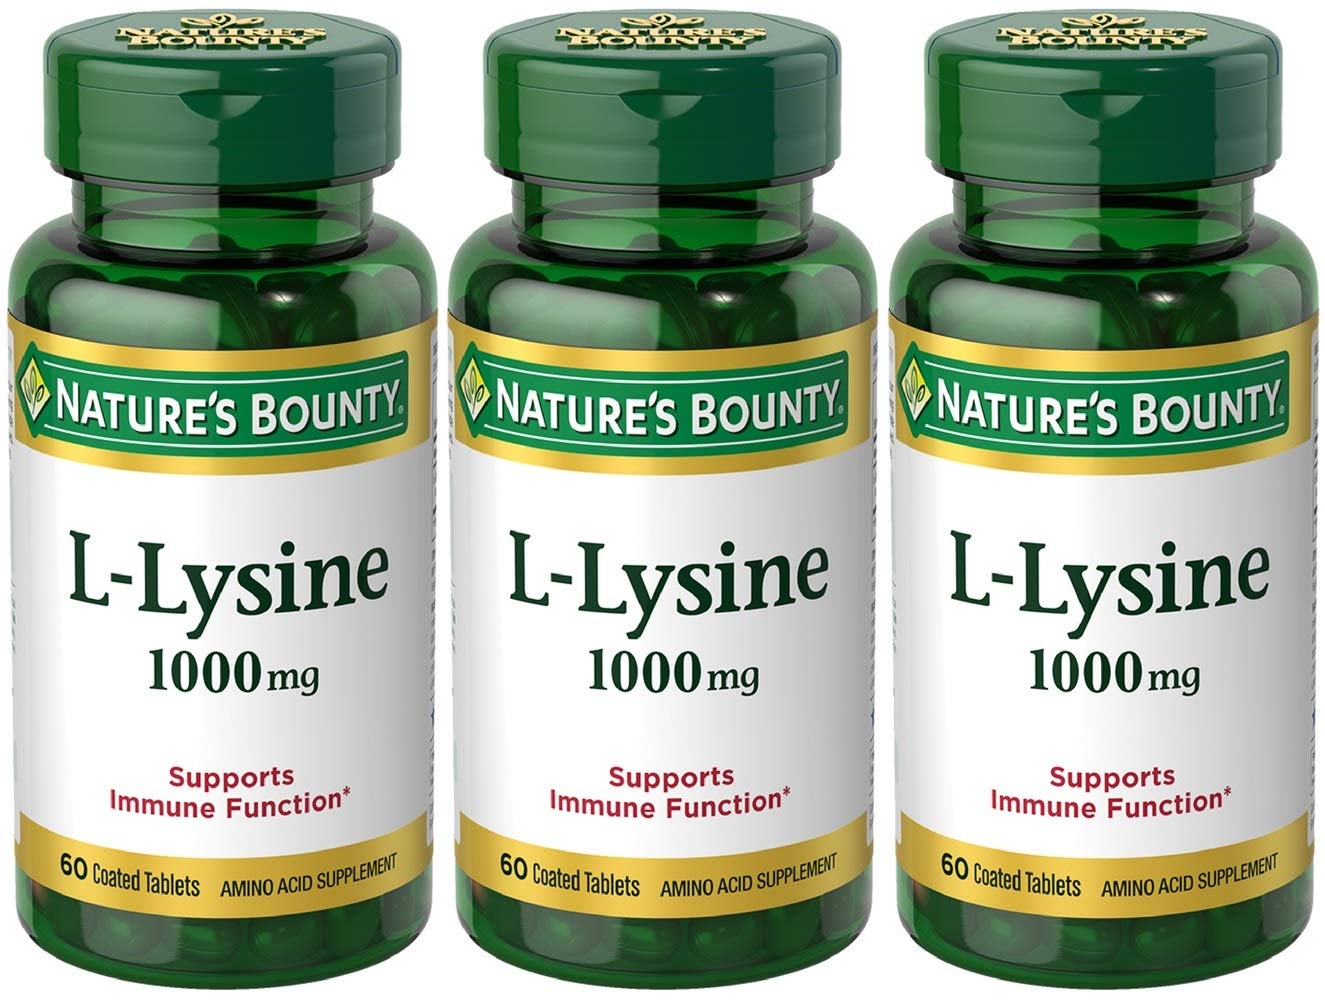 Nature's Bounty L-Lysine, 1000mg, 180 Tablets (3 x 60 Count Bottles)